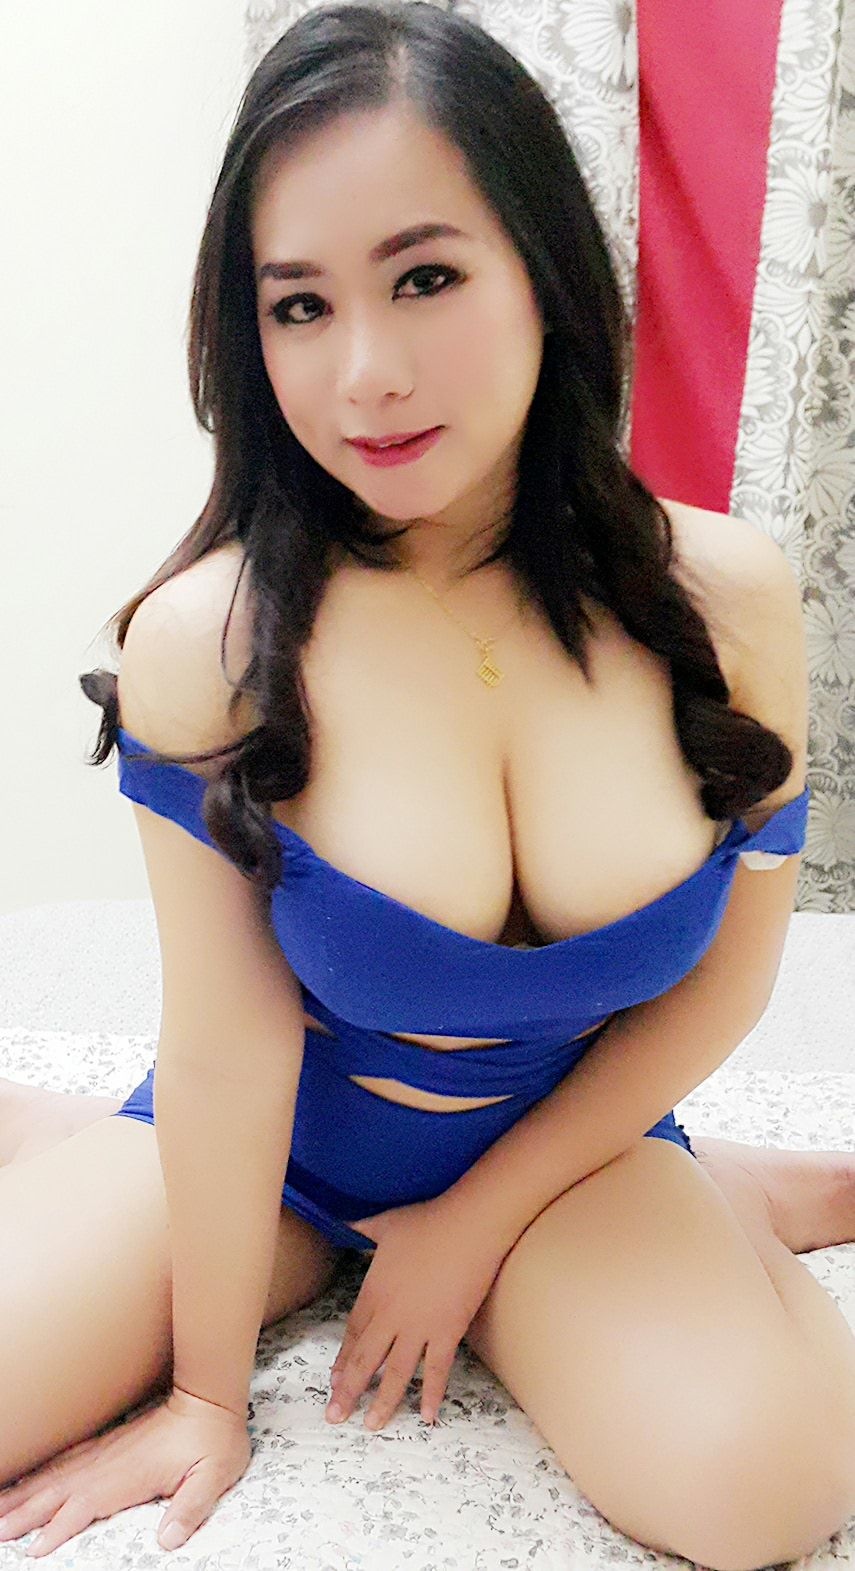 from Damien japan woman naked biggest boobs